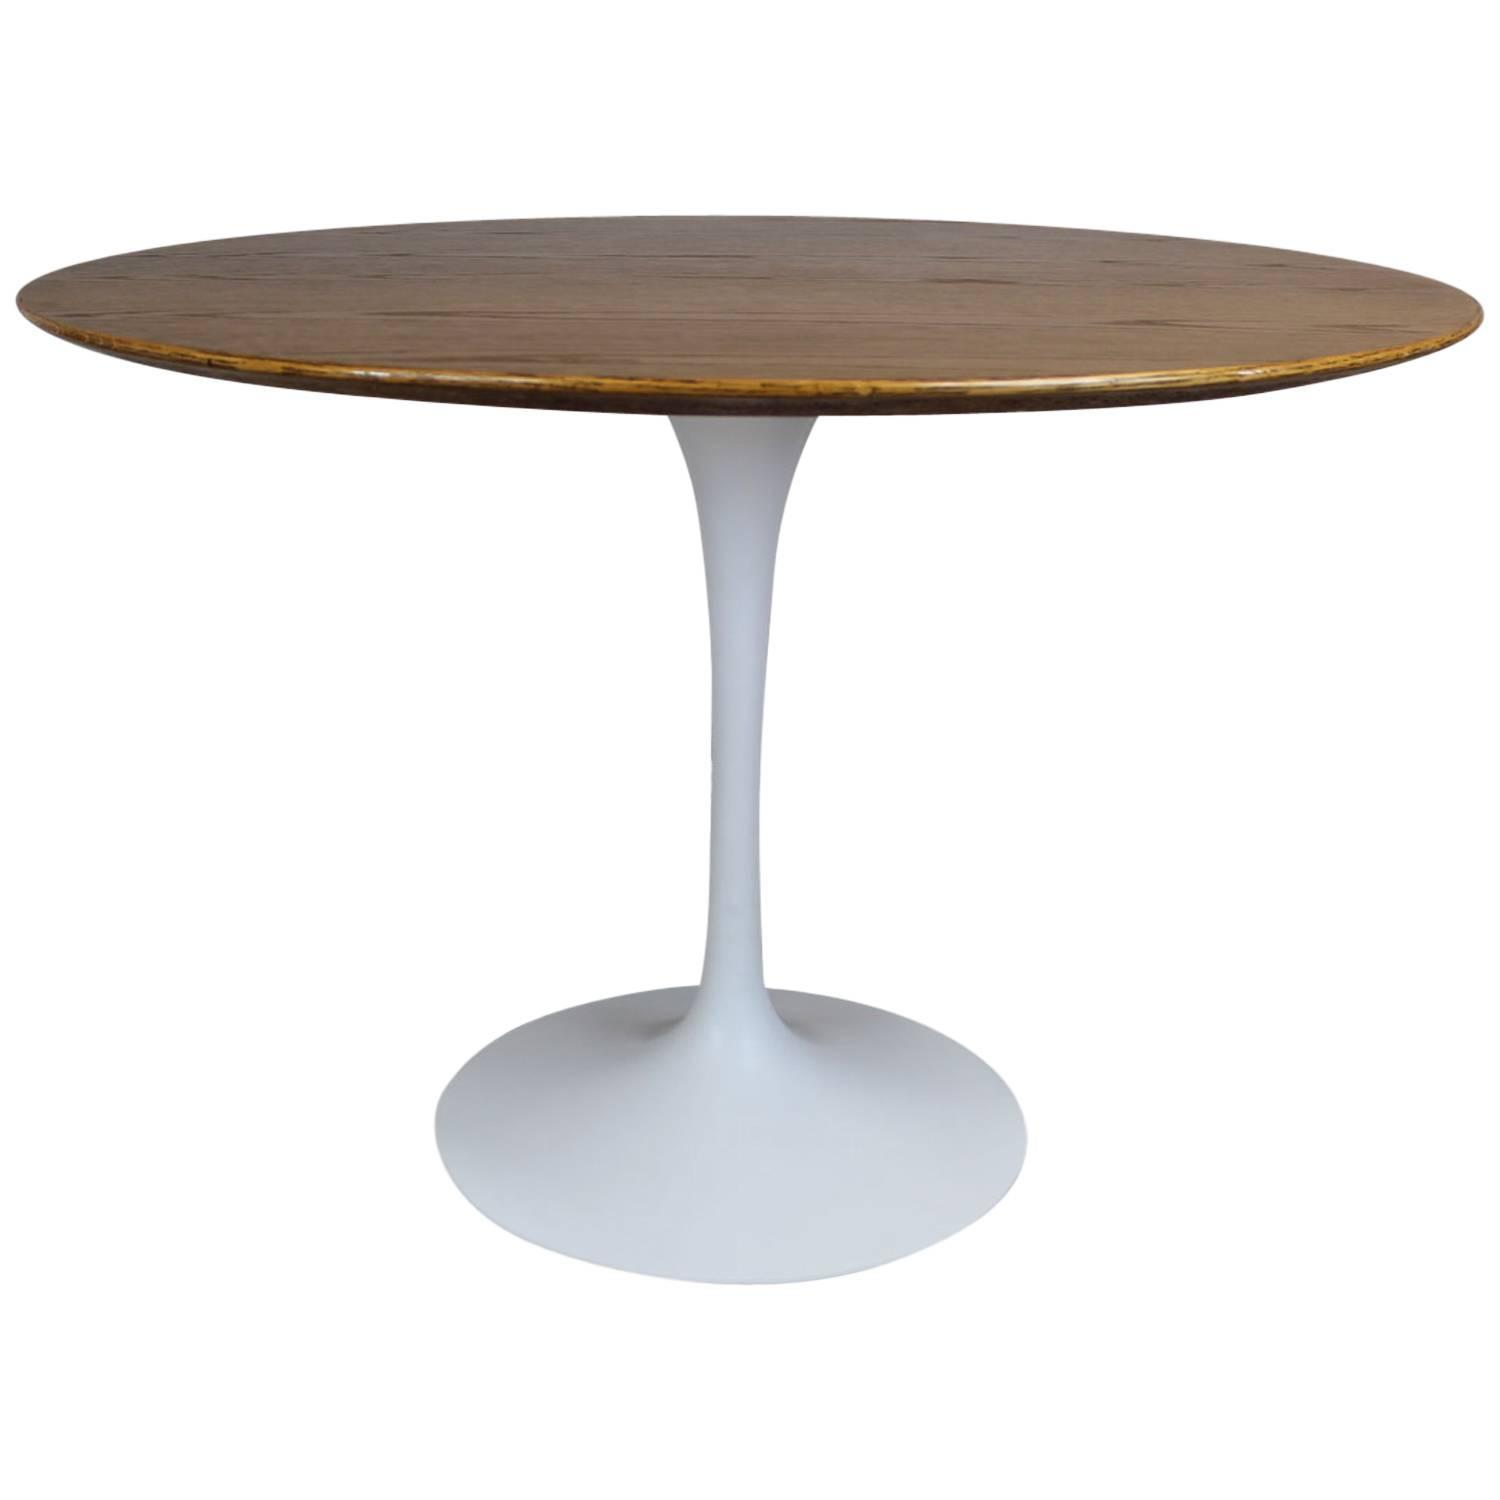 Eero saarinen tulip base dining table at 1stdibs for Tulip dining table